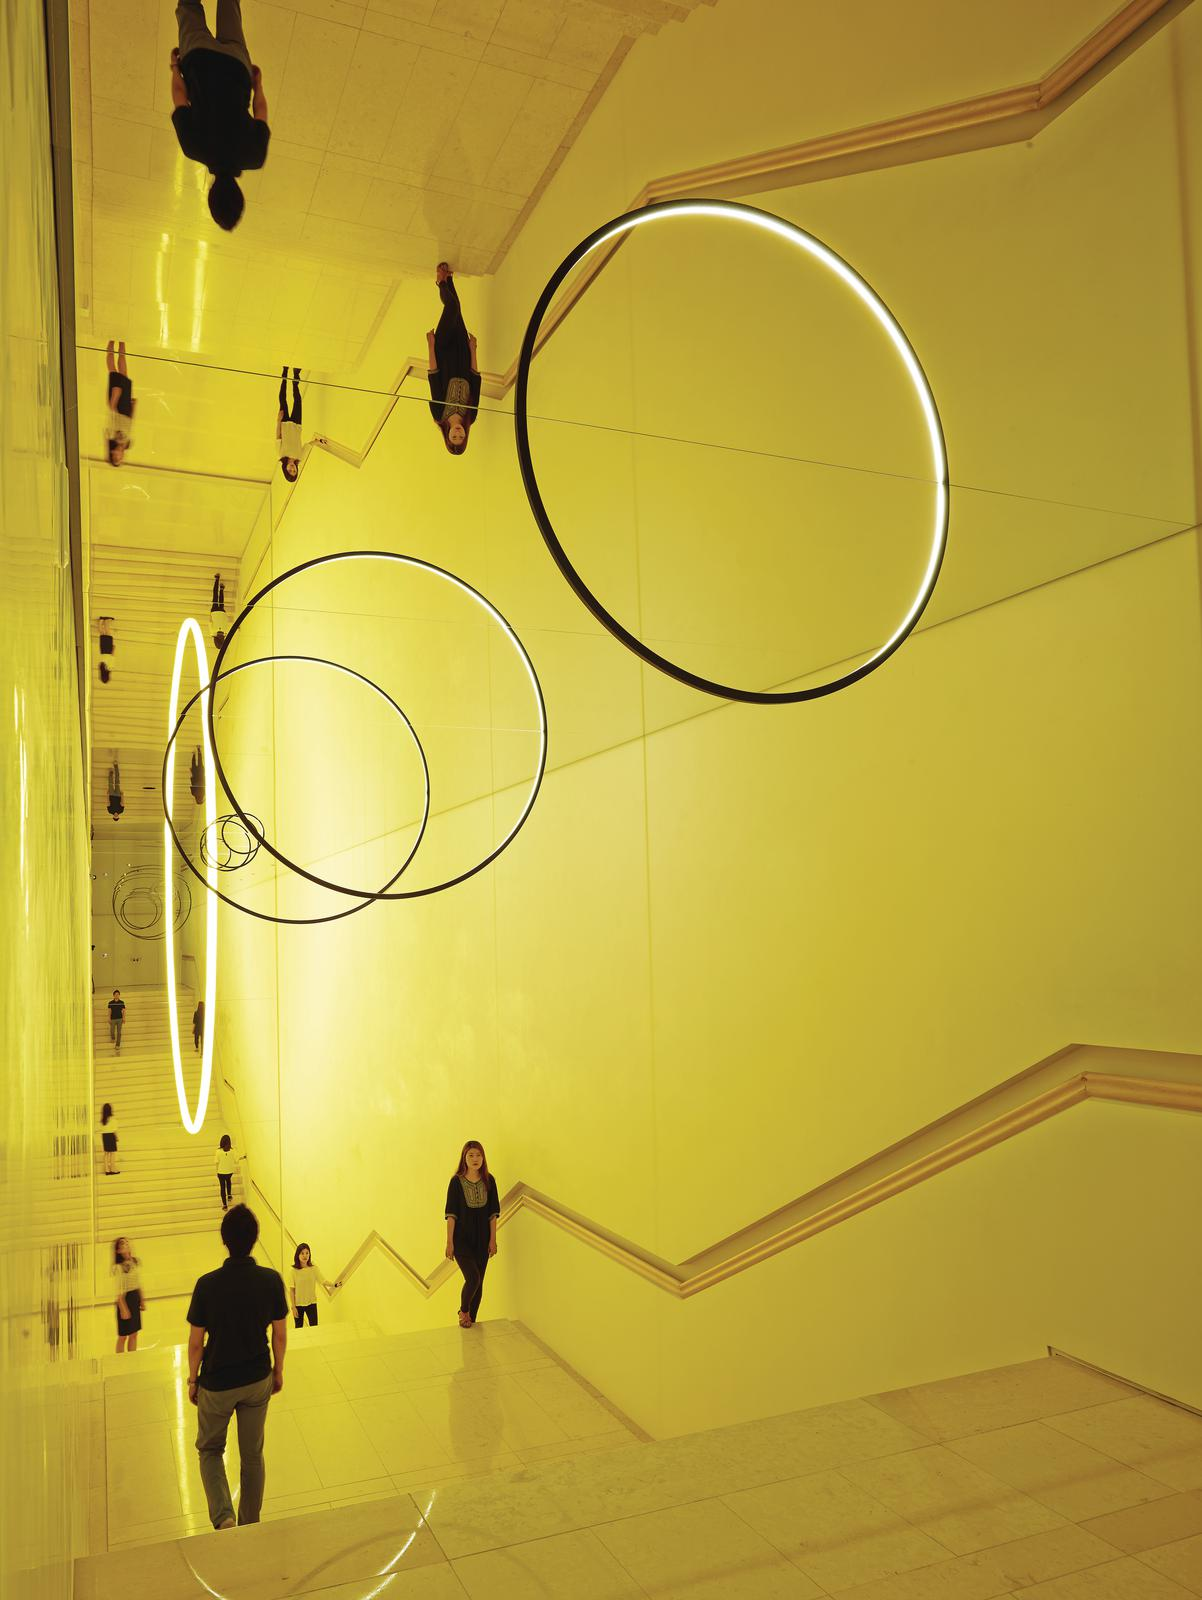 Gravity stairs • Artwork • Studio Olafur Eliasson